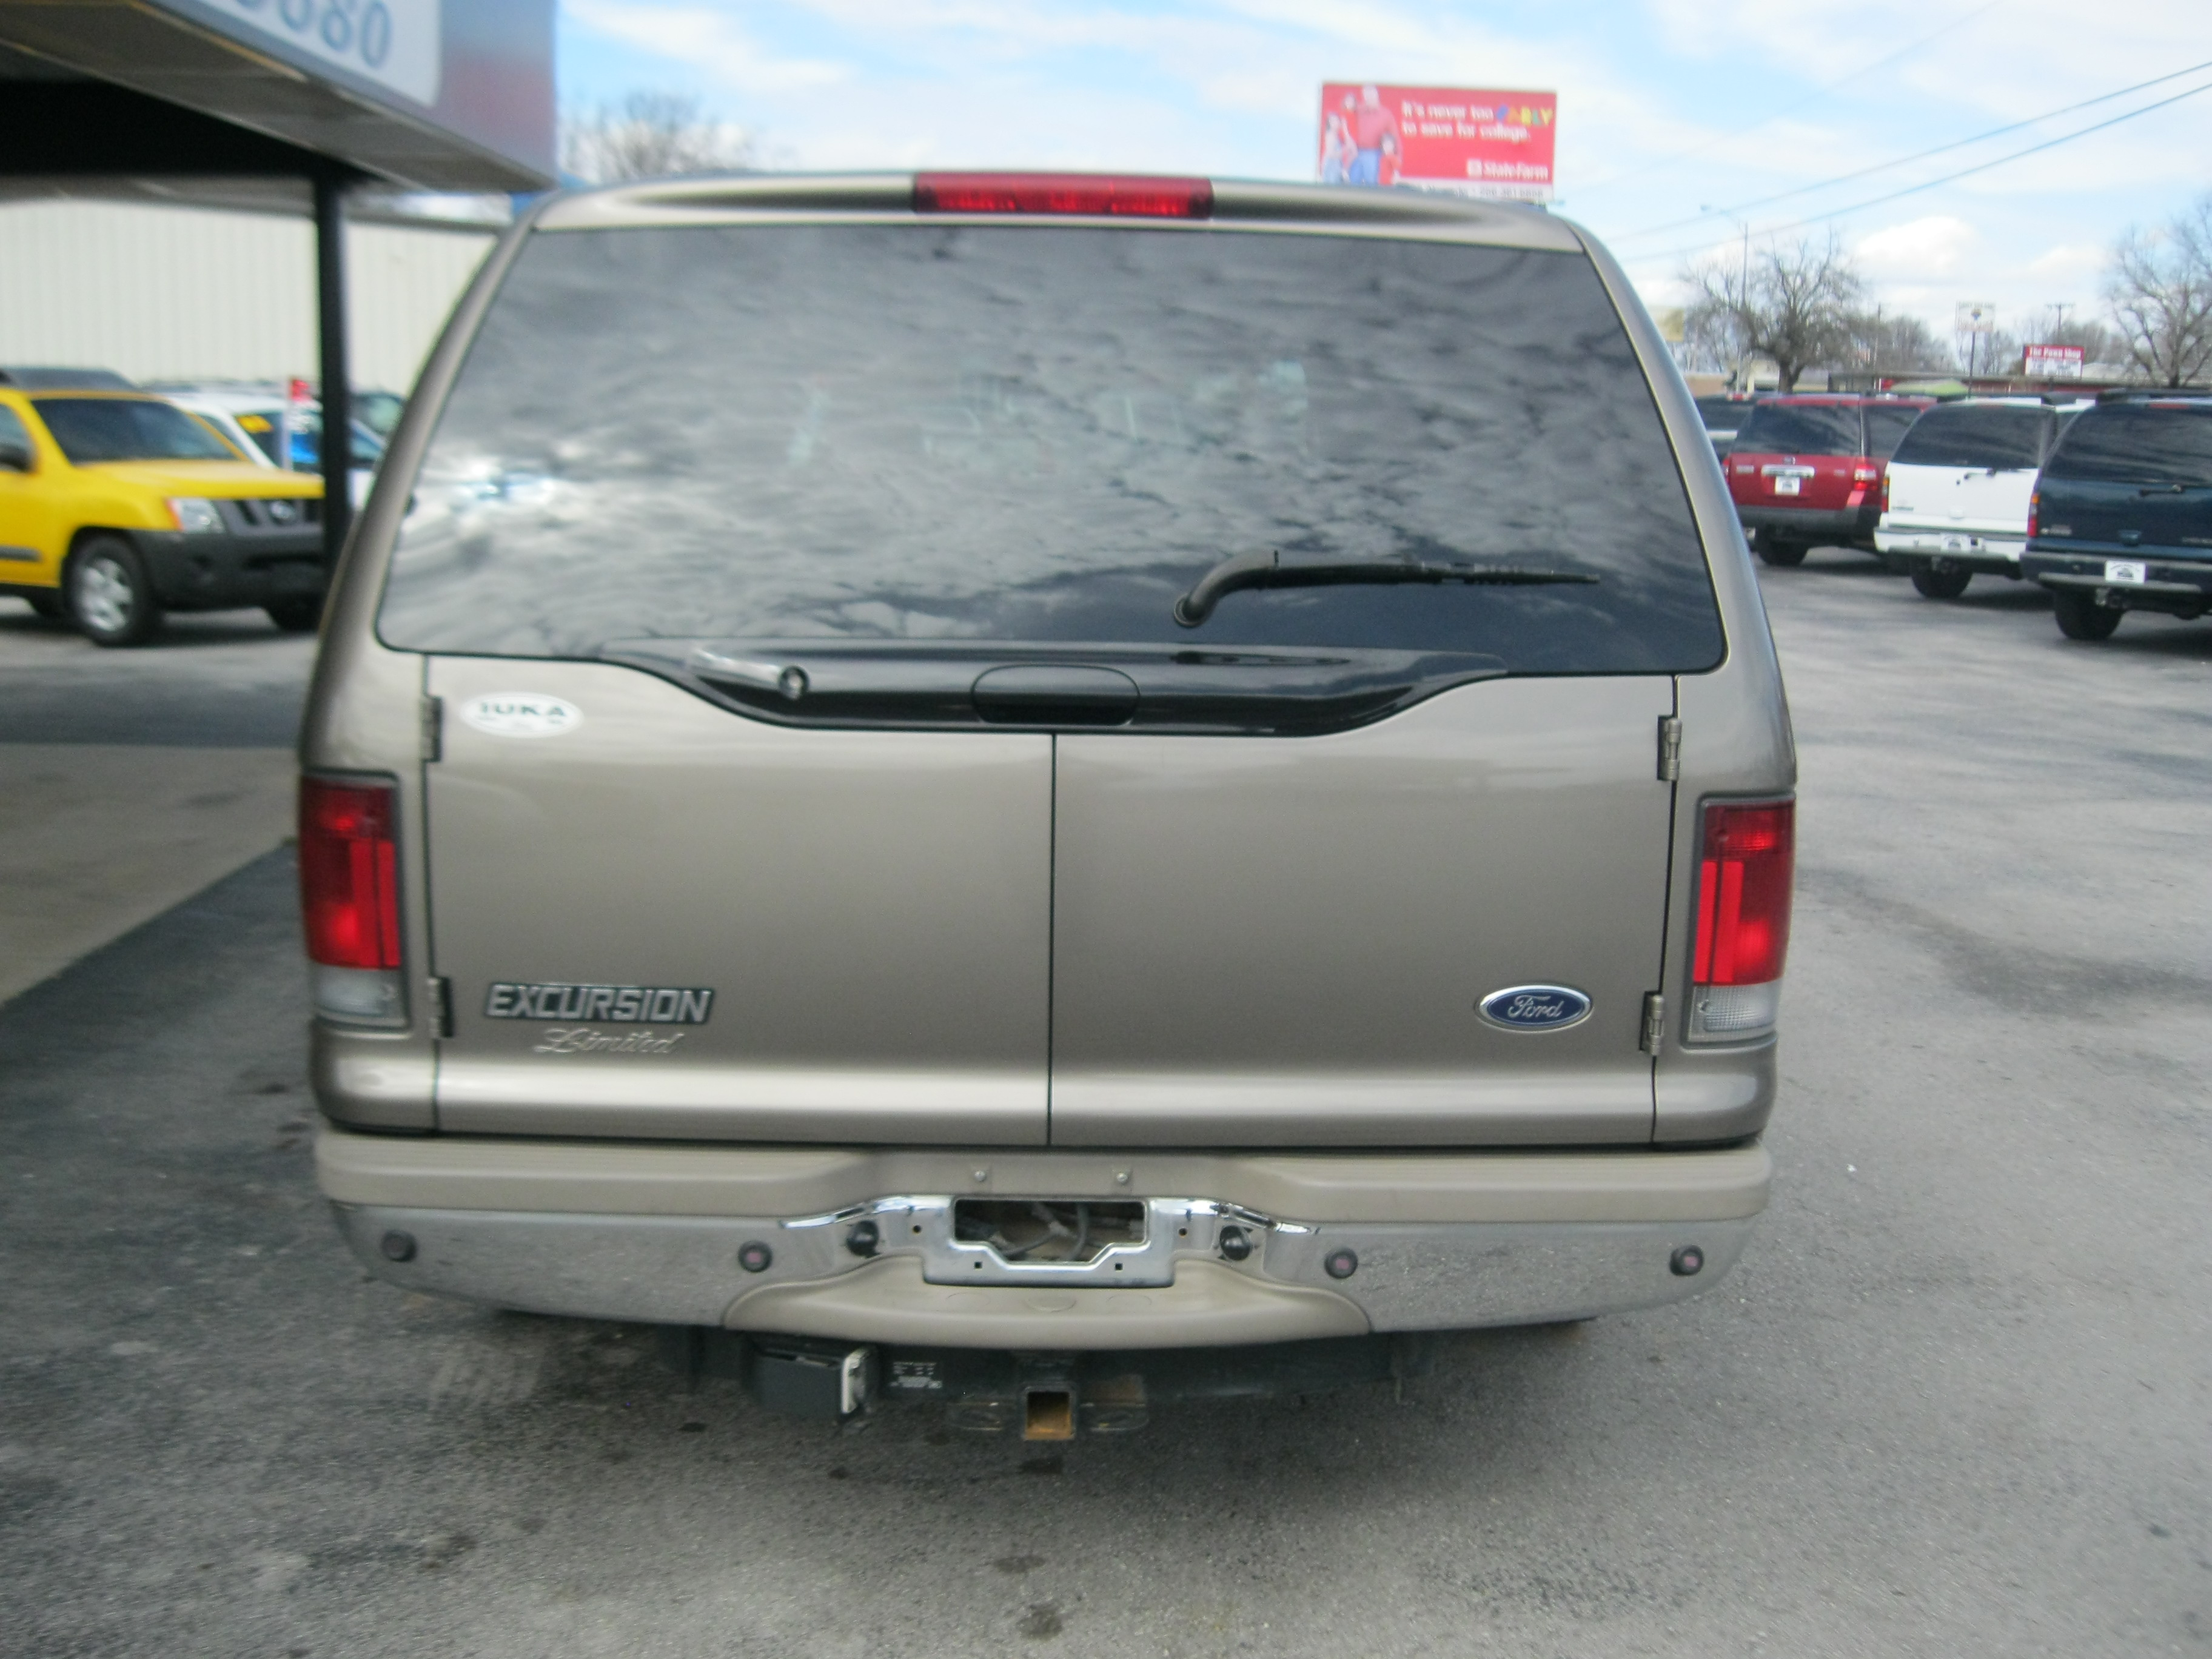 2002 Ford Excursion Image 3